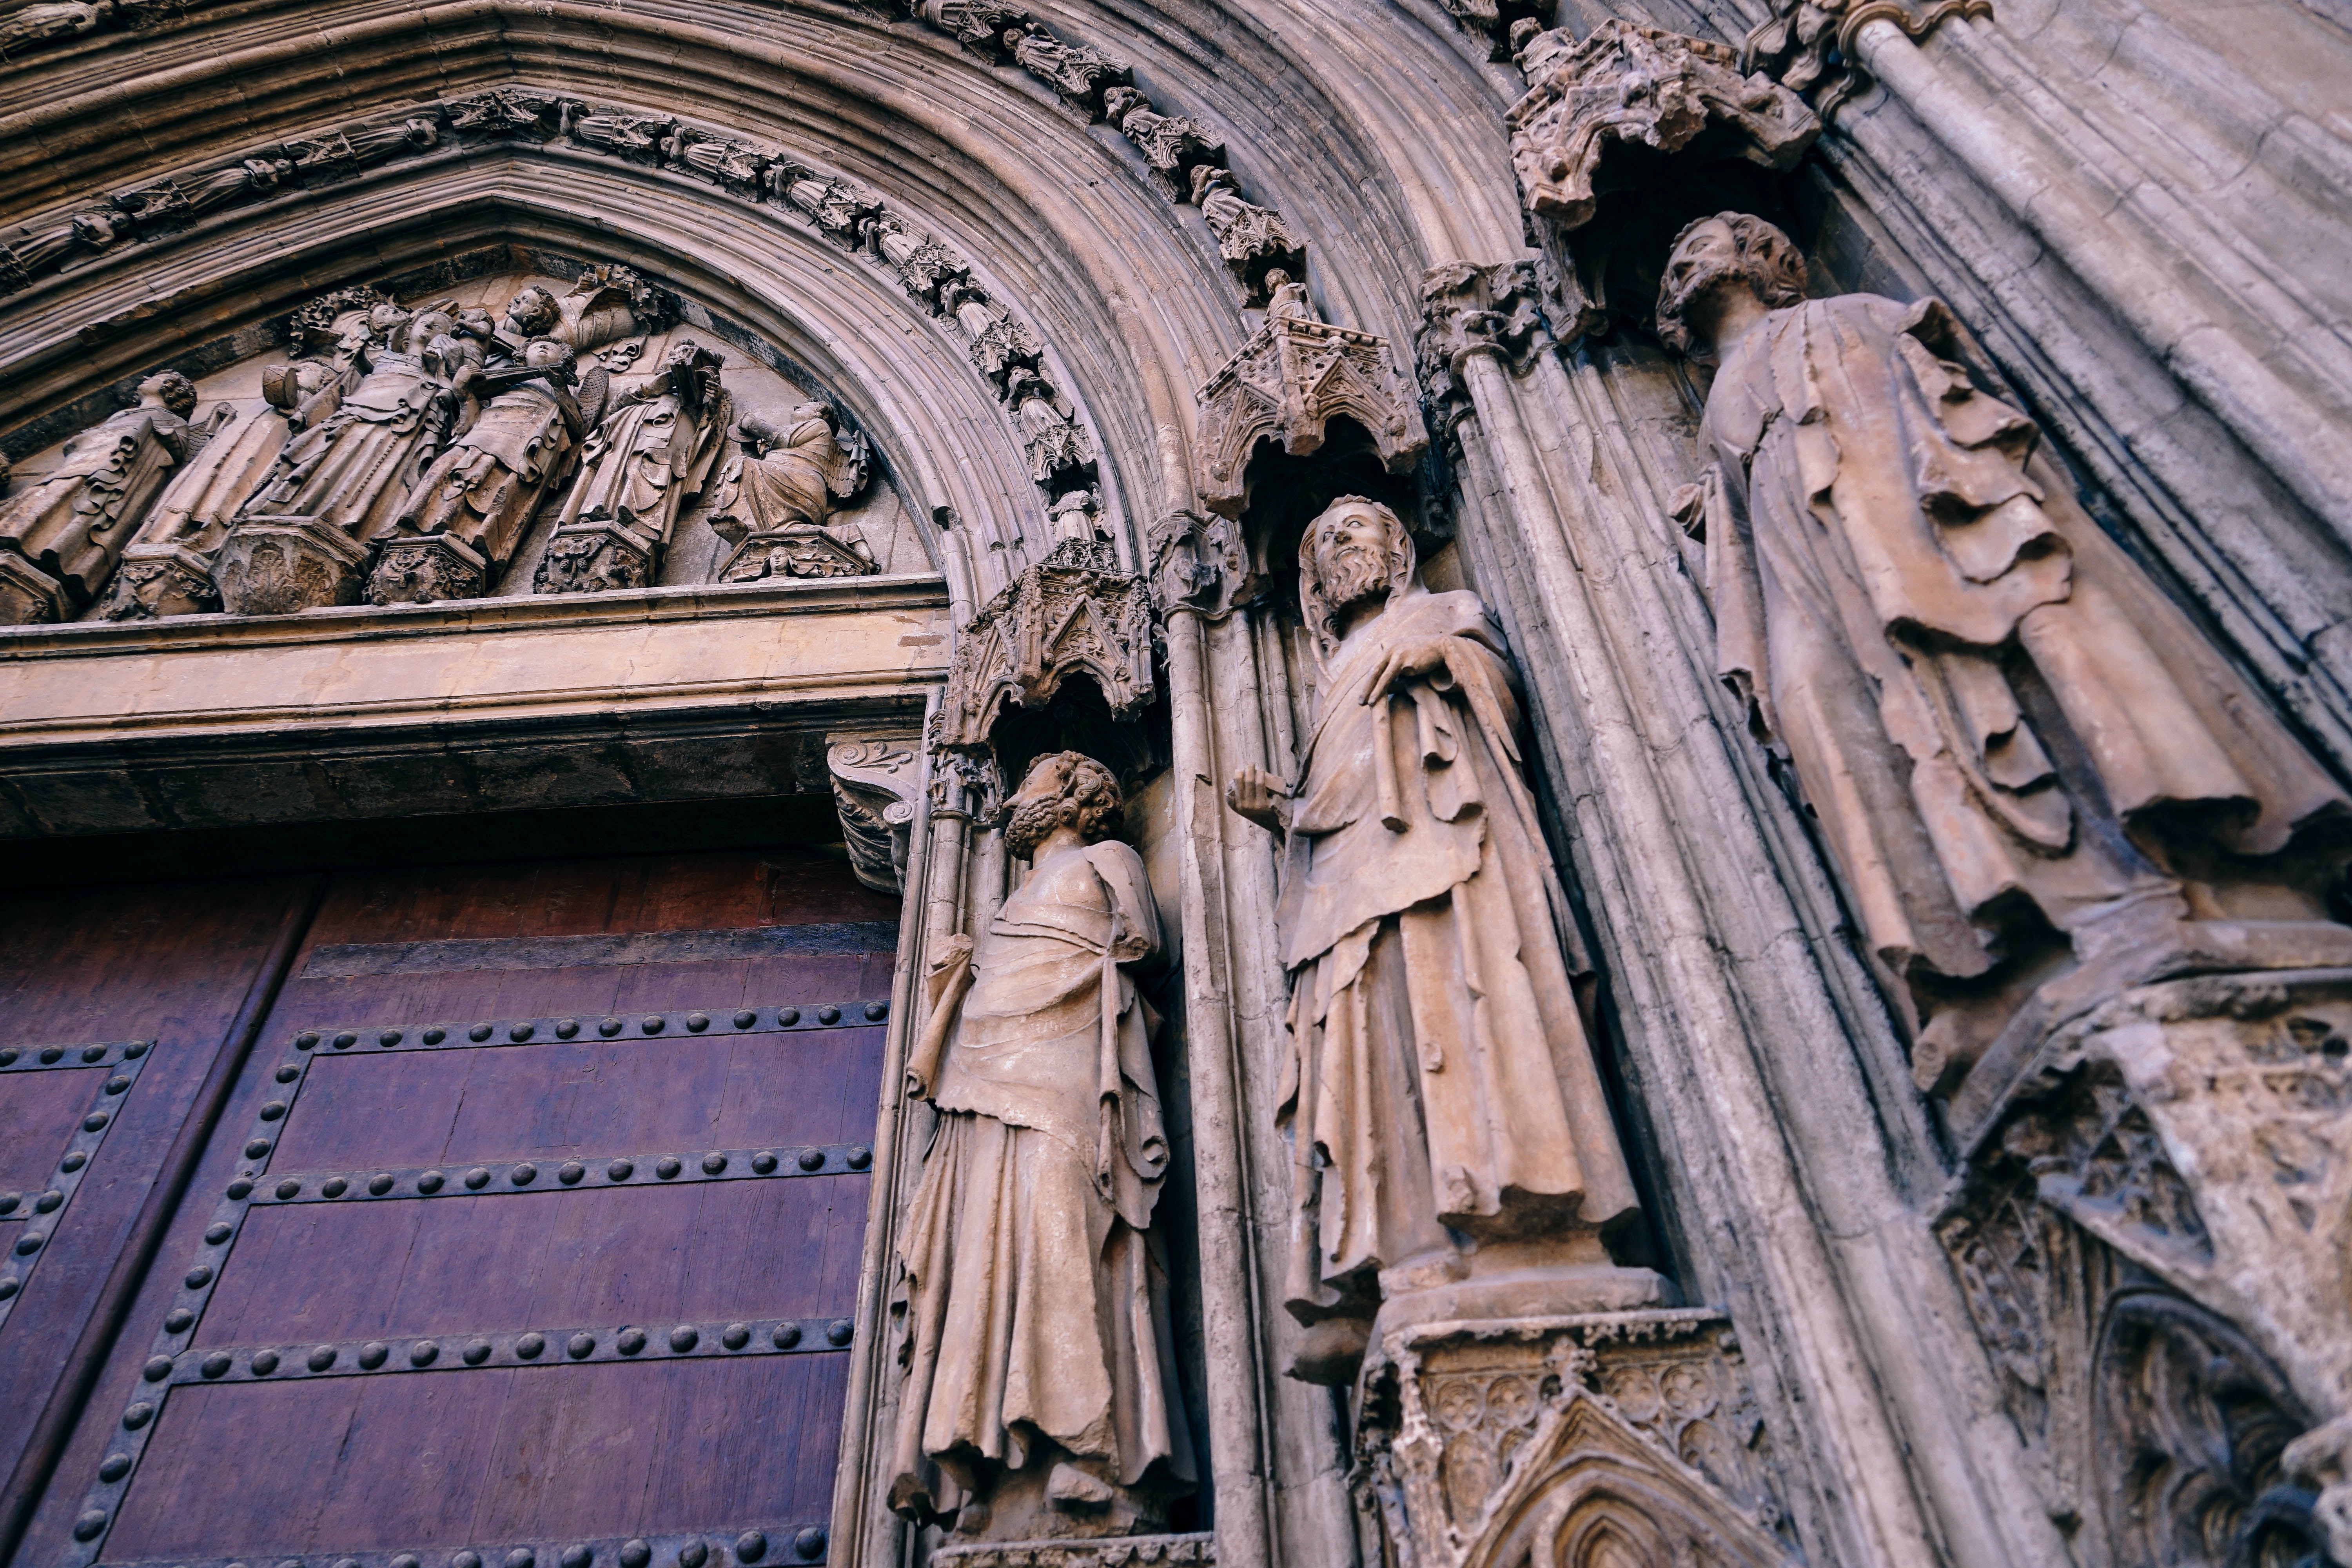 Carved statues on the front wall of a church.